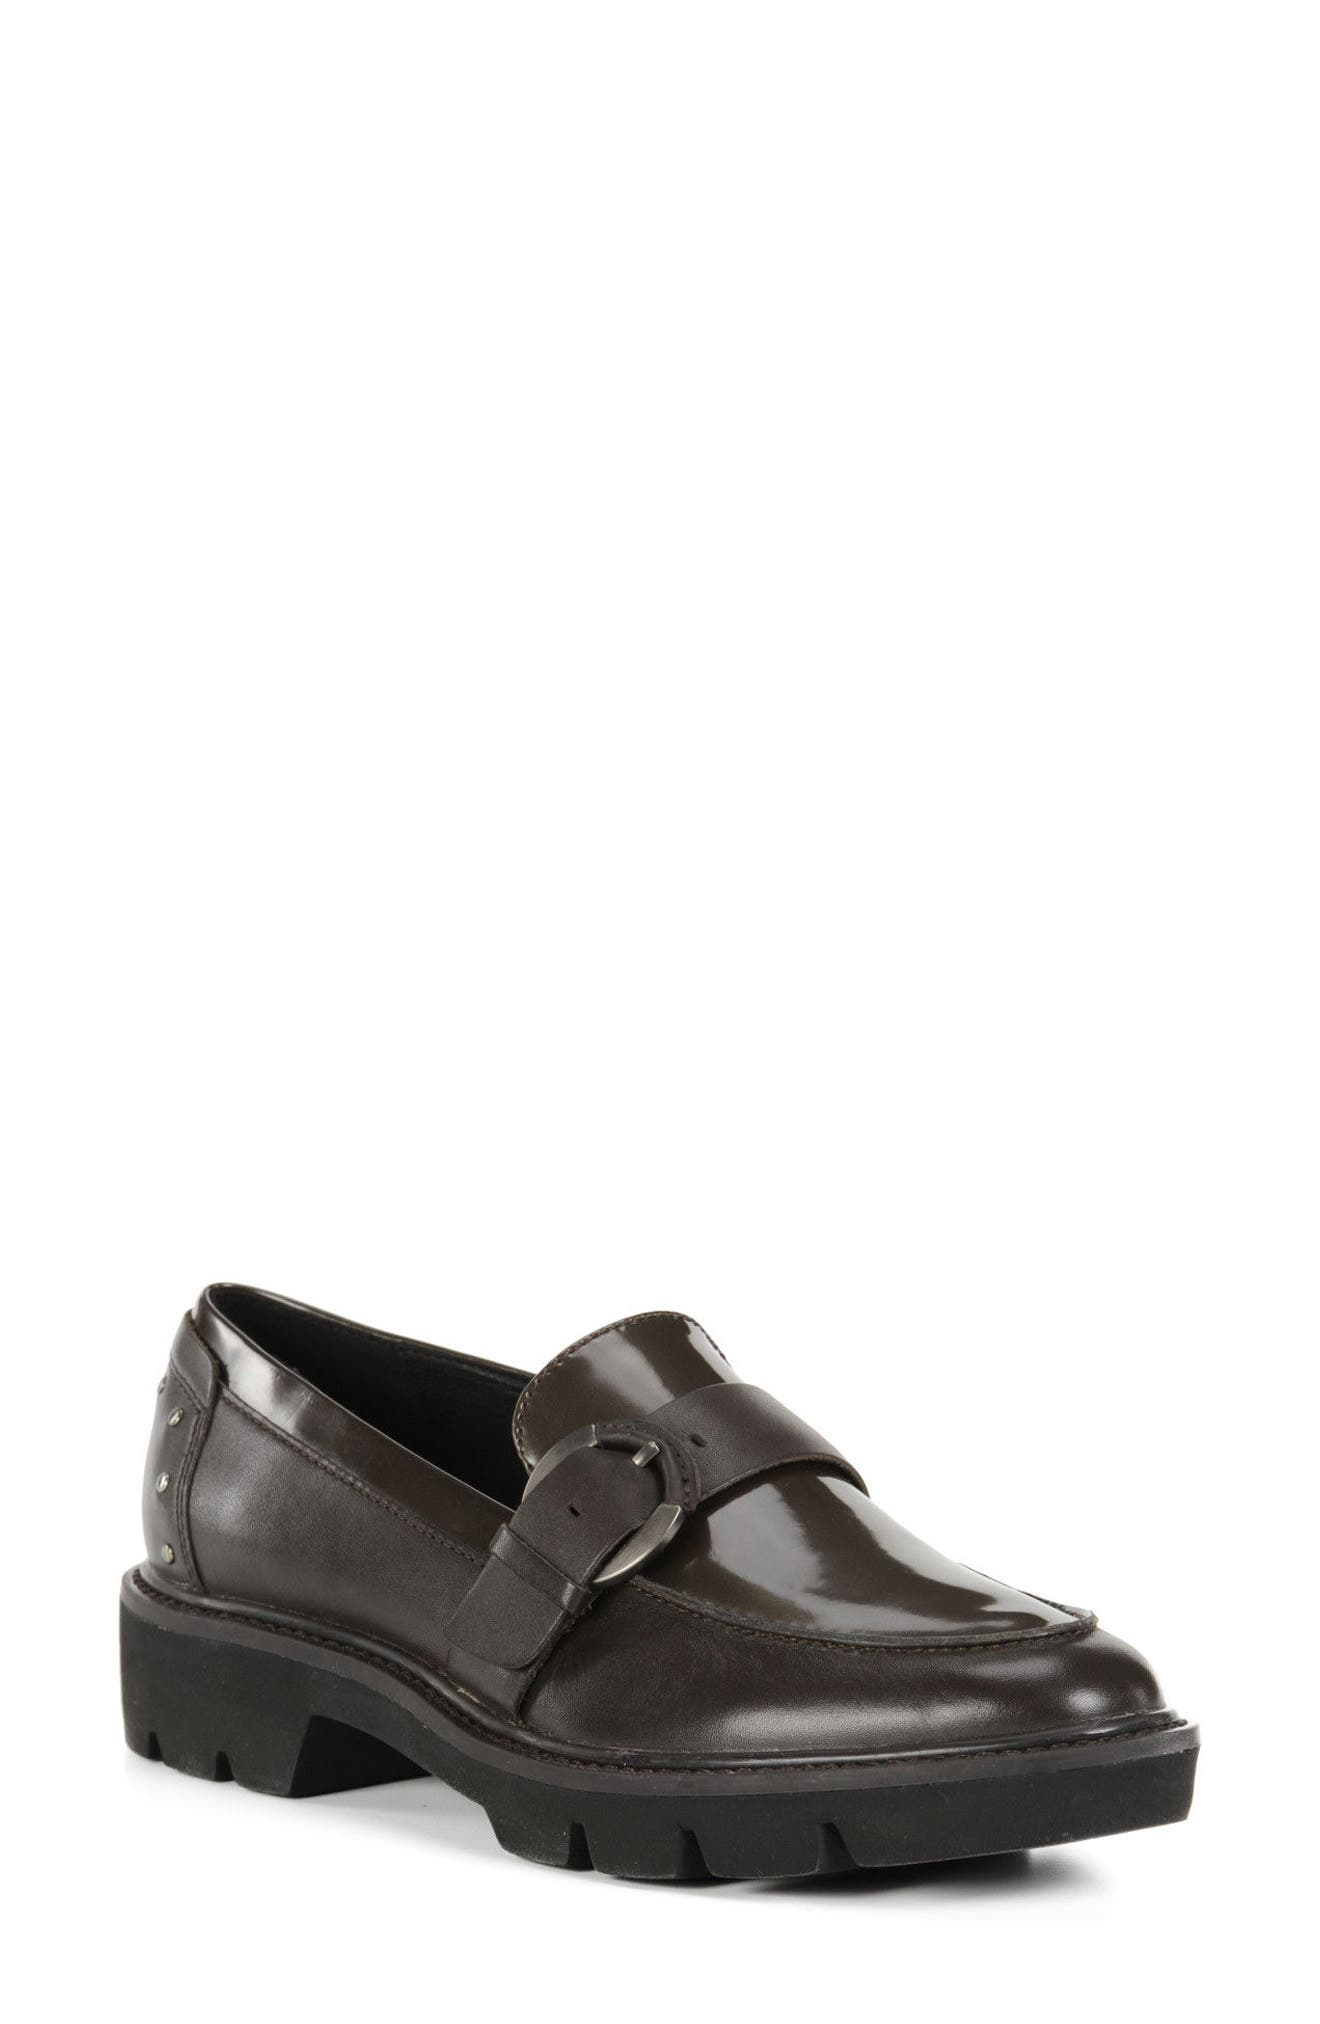 Alternate Image 1 Selected - Geox Quinlynn Loafer (Women)